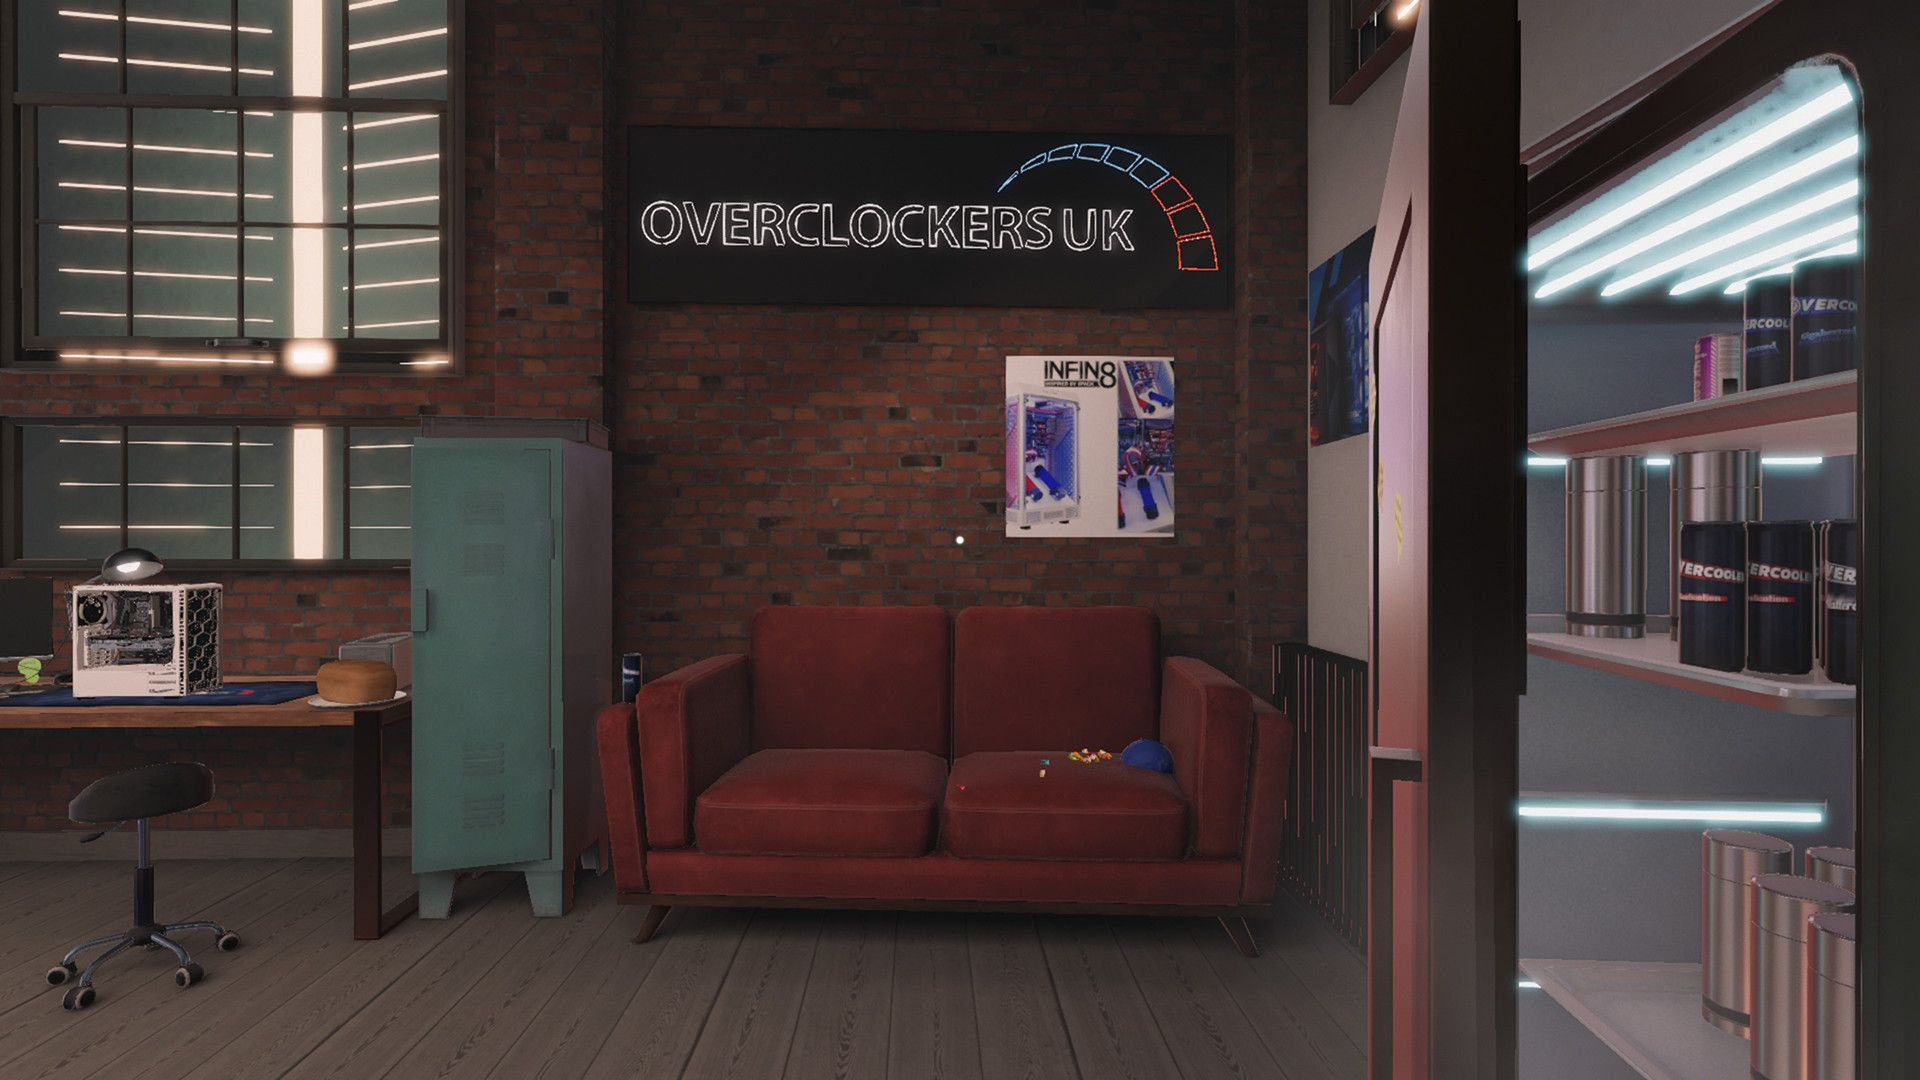 PC Building Simulator - Overclockers UK Workshop